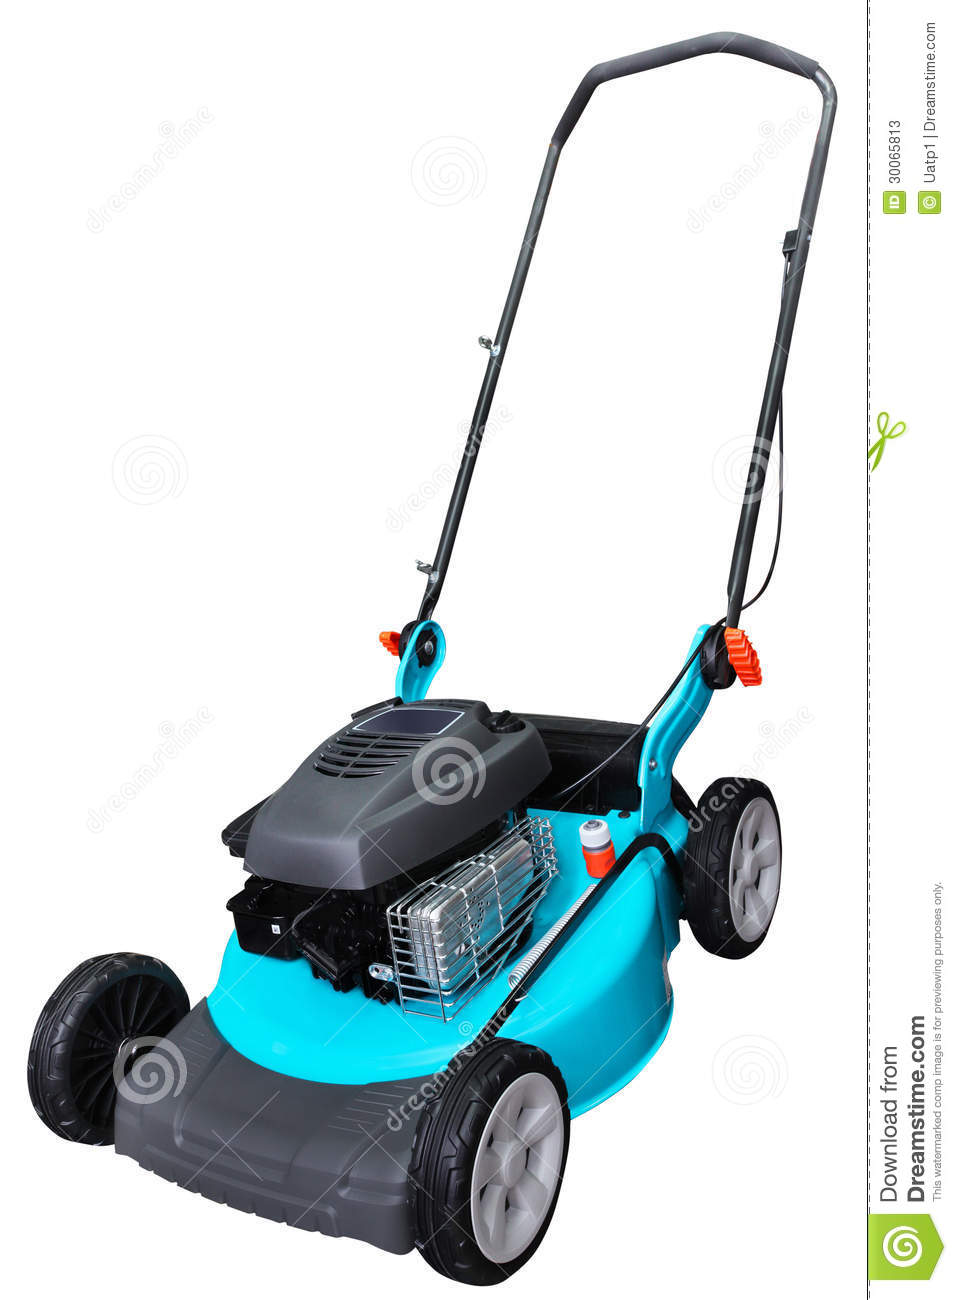 Lawn Mower Under The White Background Mr No Pr No 2 509 1